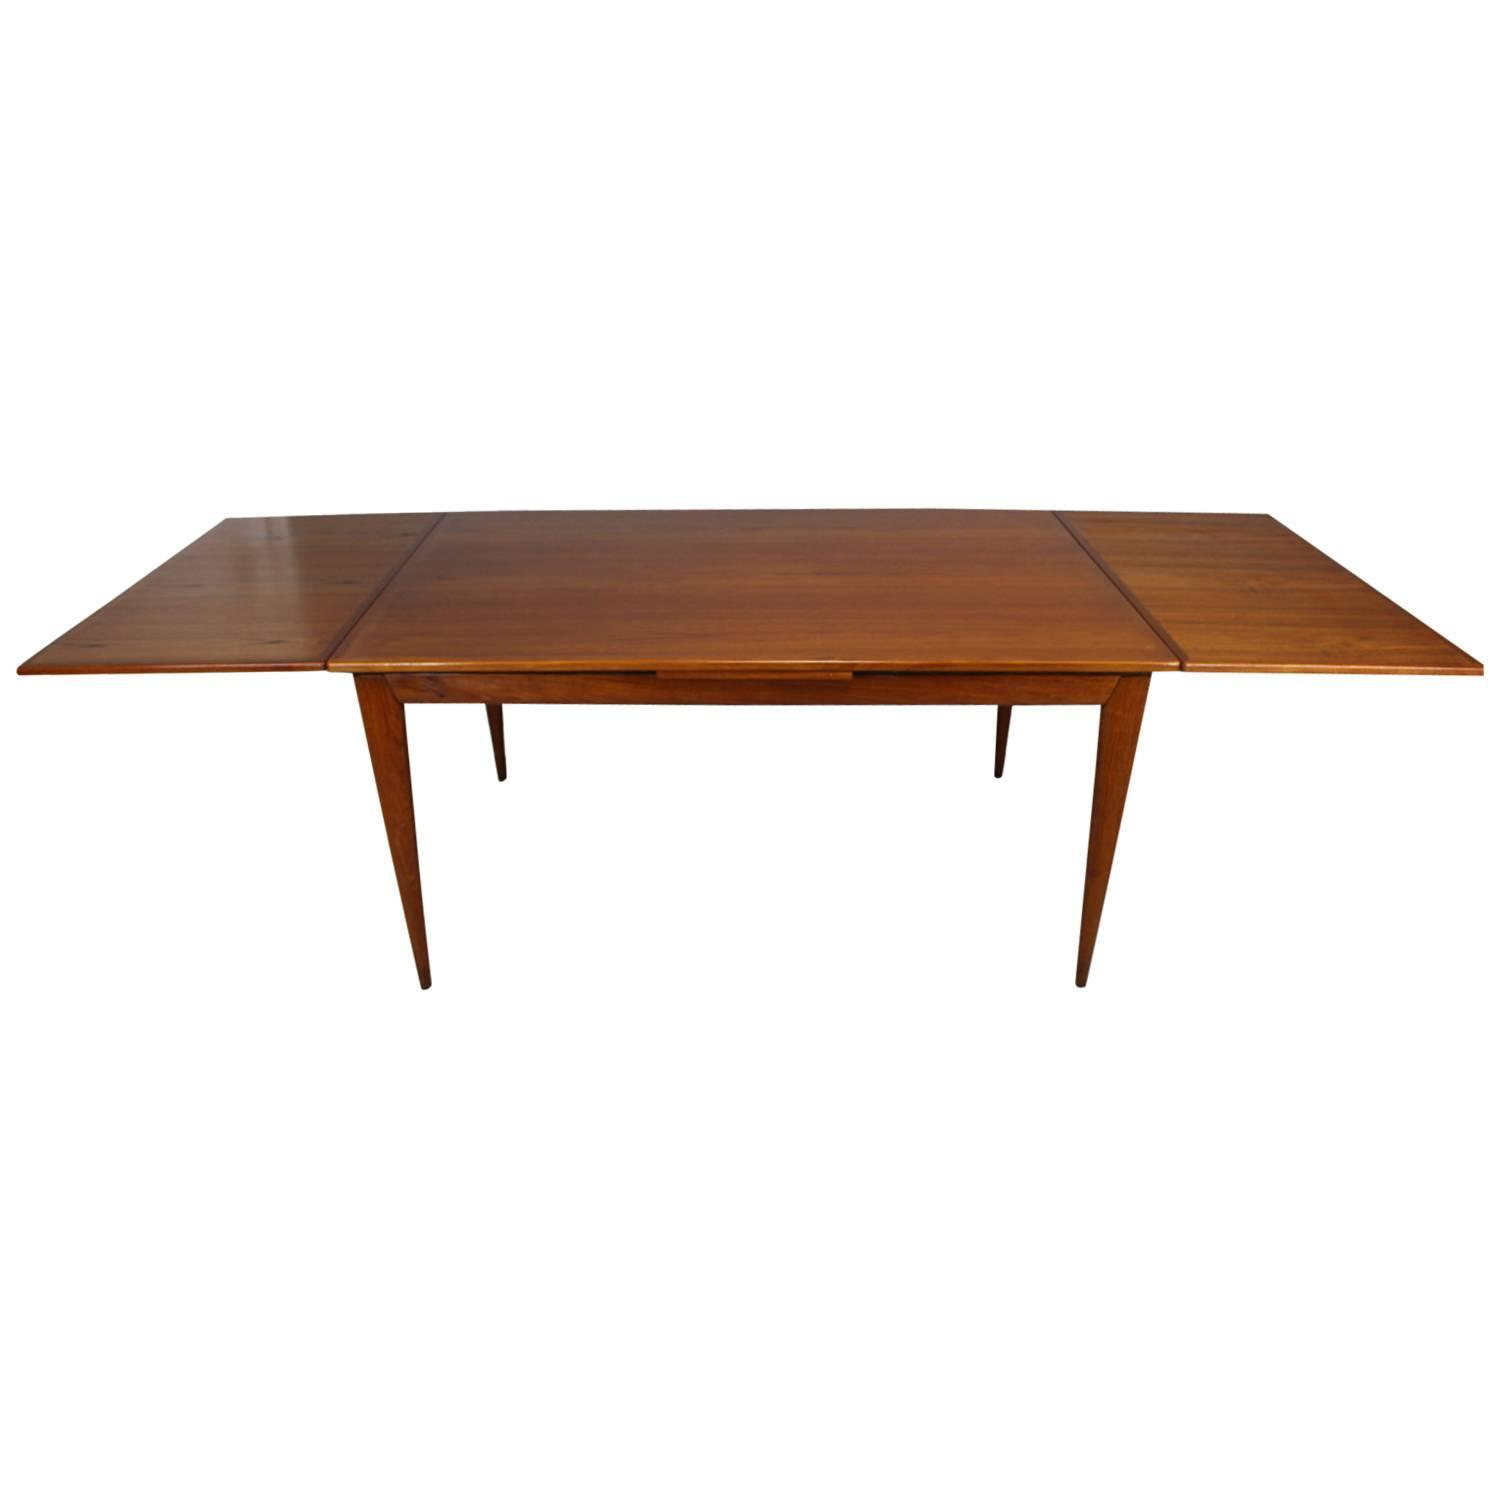 Niels Otto M ller Teak Extension Dining Table Model For Sale at